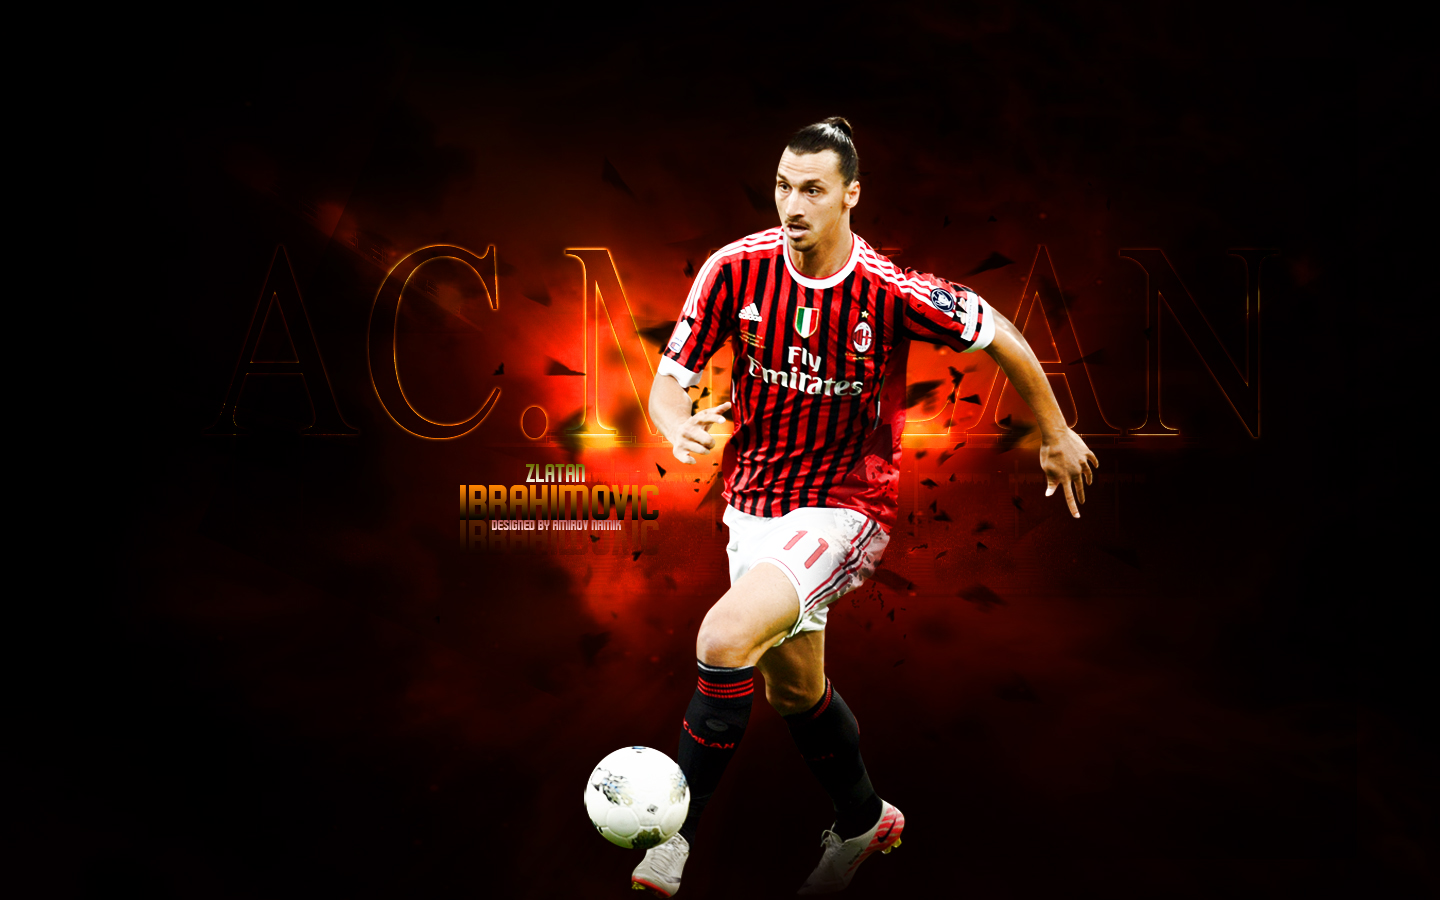 zlatan ibrahimovic hd wallpapers a blog all type sports